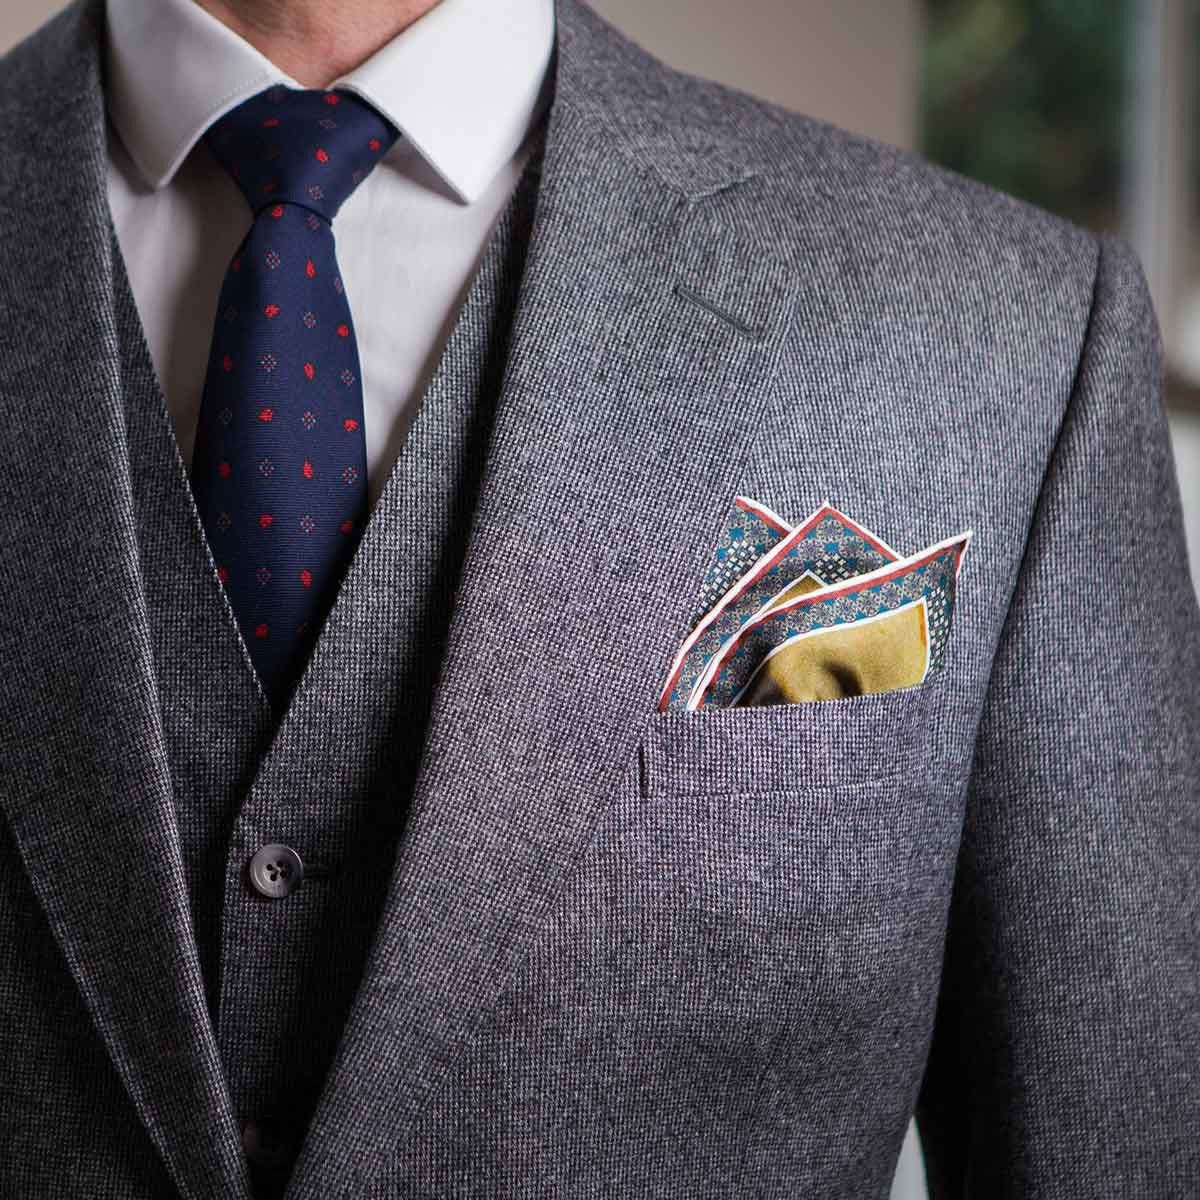 Mens jacket pocket handkerchief -  Perseus Turning Phineas And His Followers To Stone Pocket Square Fold 1